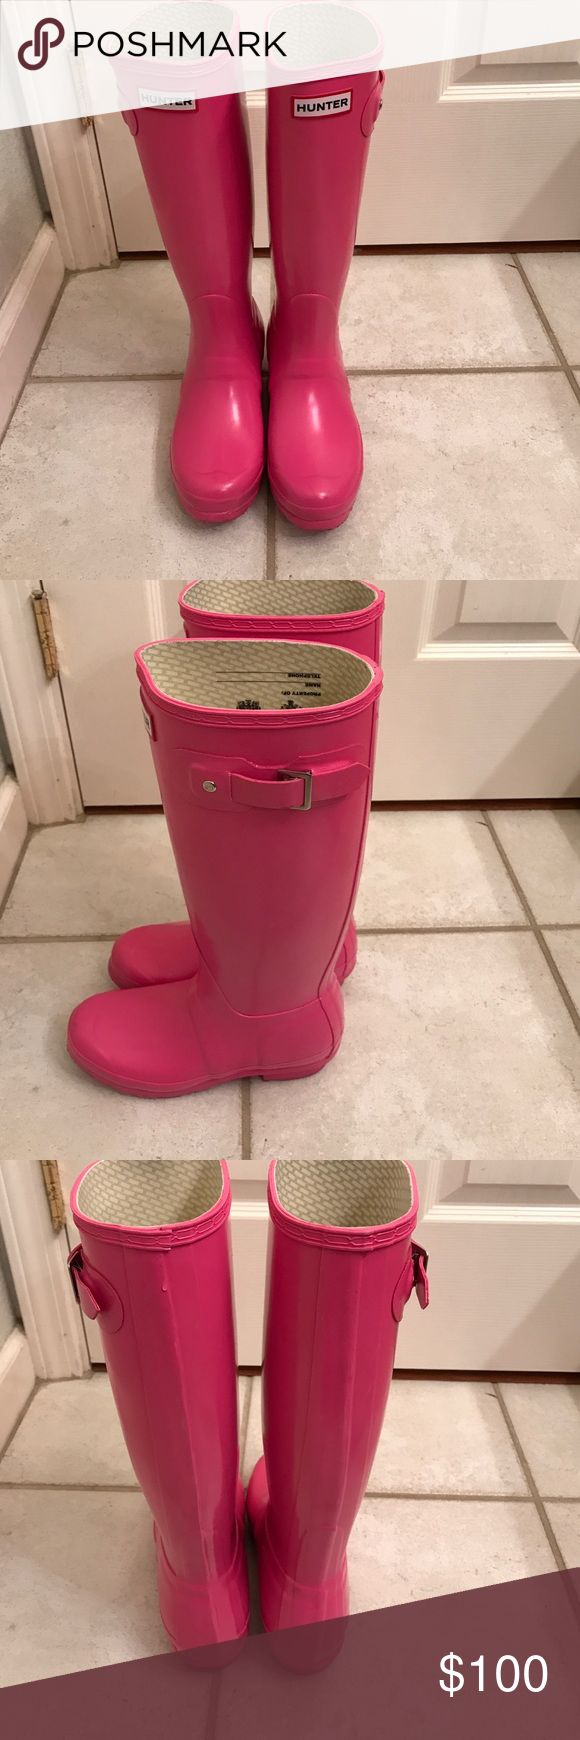 Hunter Rain Boots Barbie Pink Tall Hunter Rain Boots. Size 5. Only worn a few times. Good Condition. The only sign of wear is on the sole as shown in the picture. Hunter Boots Shoes Winter & Rain Boots